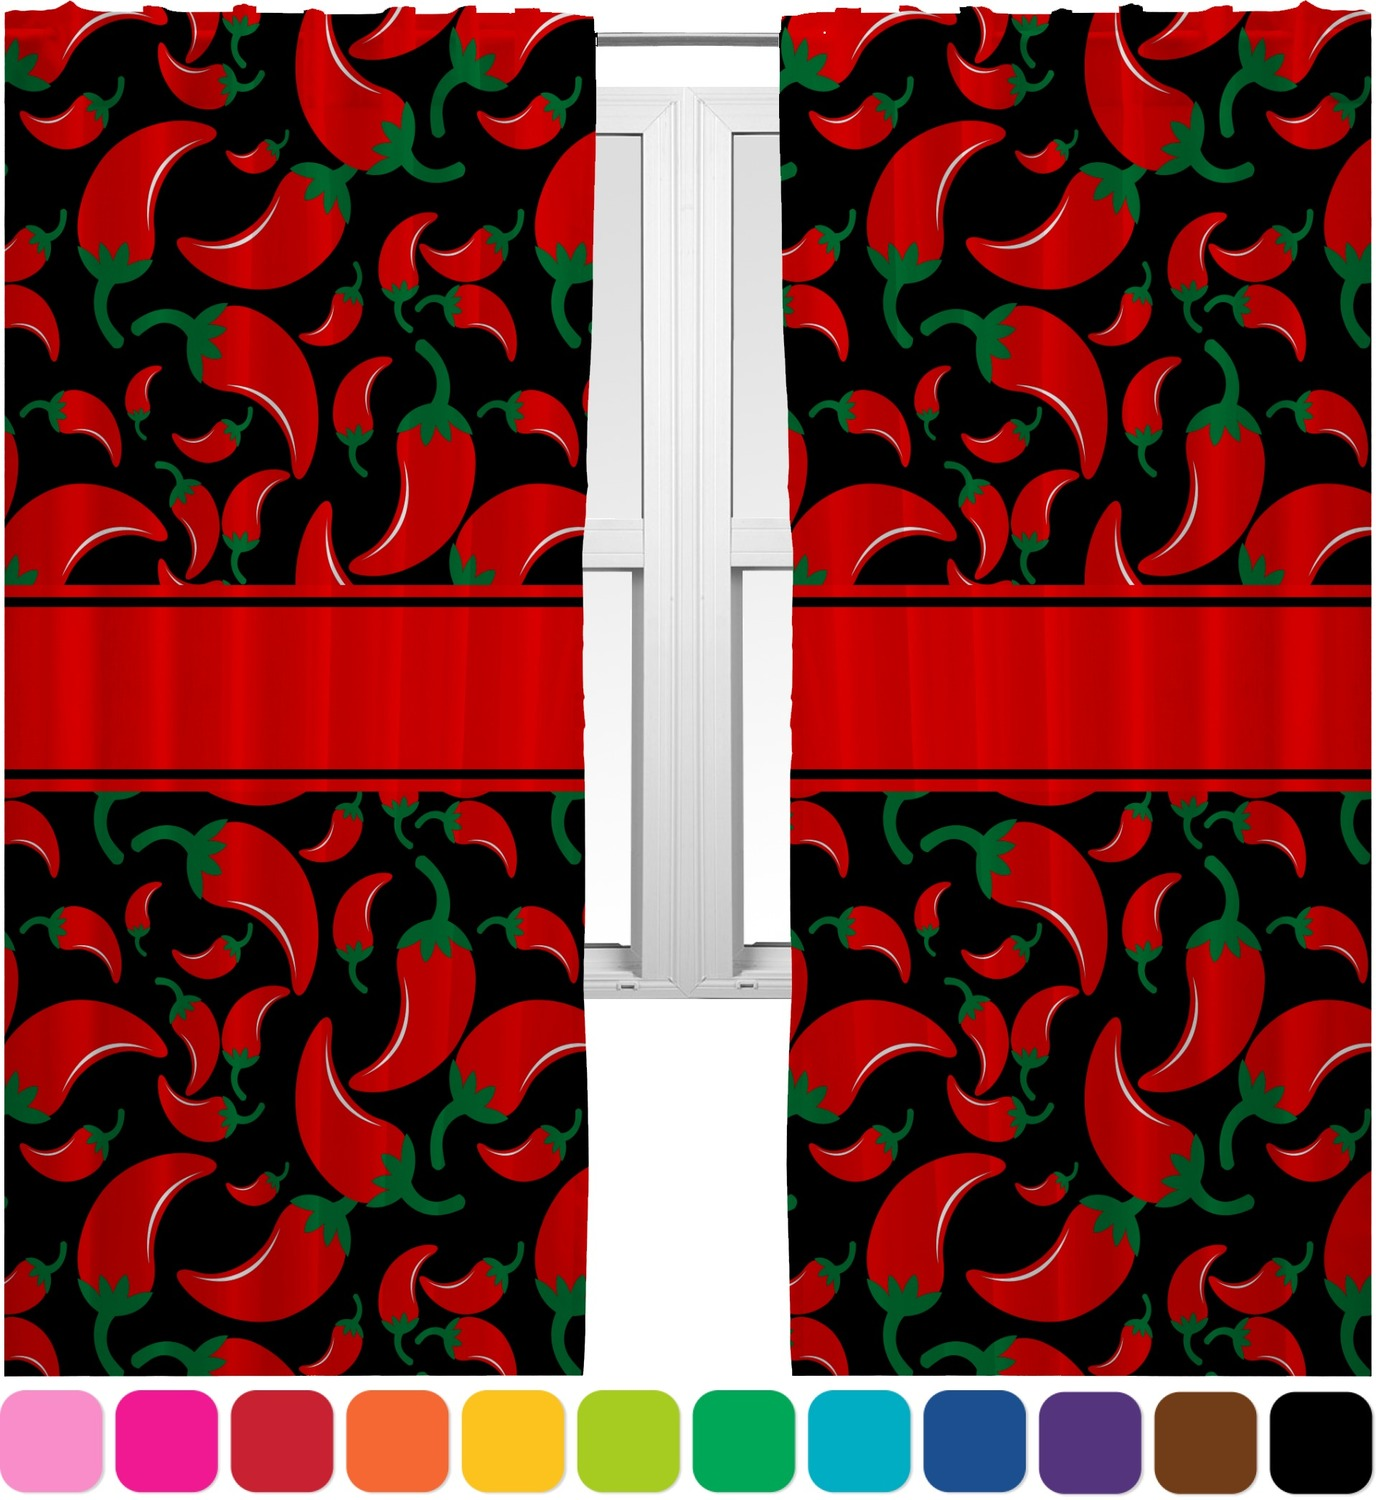 Chili Pepper Kitchen Curtains: Chili Peppers Curtains (2 Panels Per Set) (Personalized